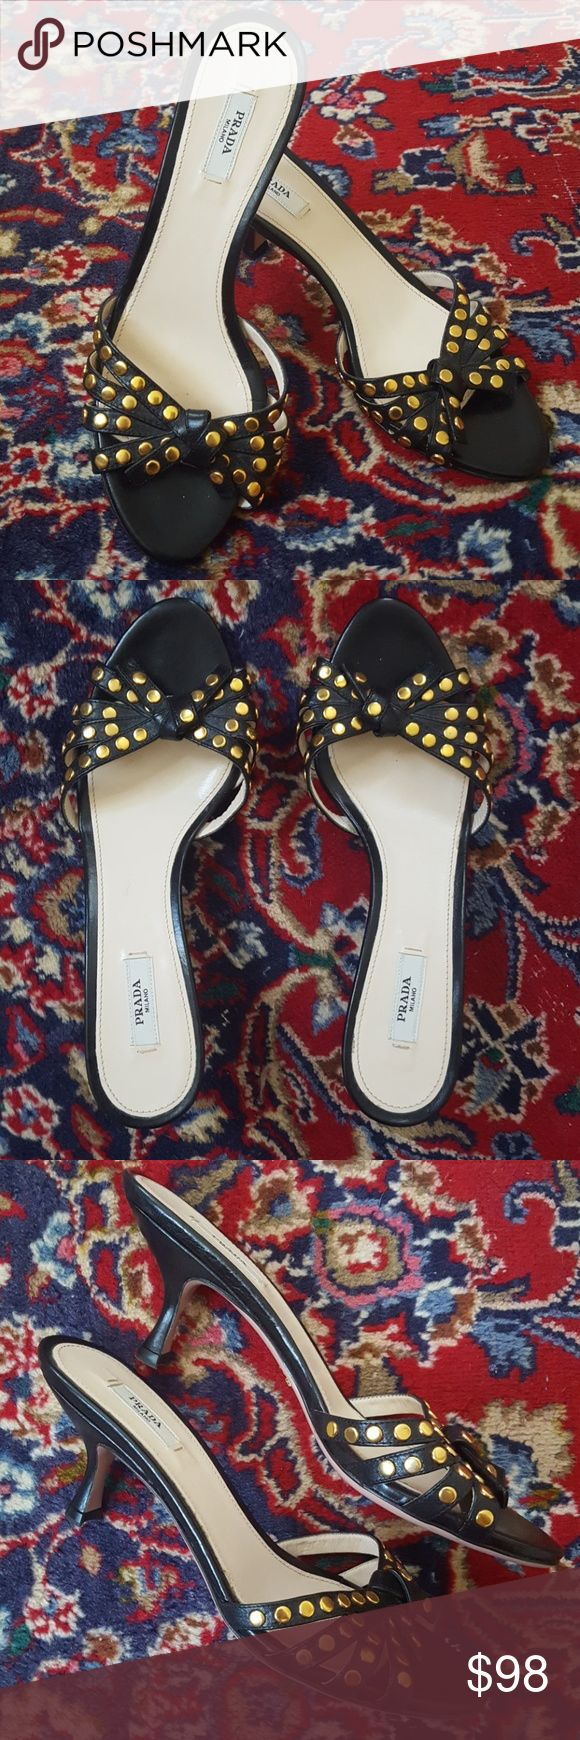 Prada Black Kitten Heel Sandals with Gold Studs Adorable Prada kitten heel mule sandals with black leather straps and ties covered in gold studs. Excellent condition with very little wear as shown. Size 37 (US size 7 ). Sandals do not come in the dust bag or box. Prada Shoes Sandals